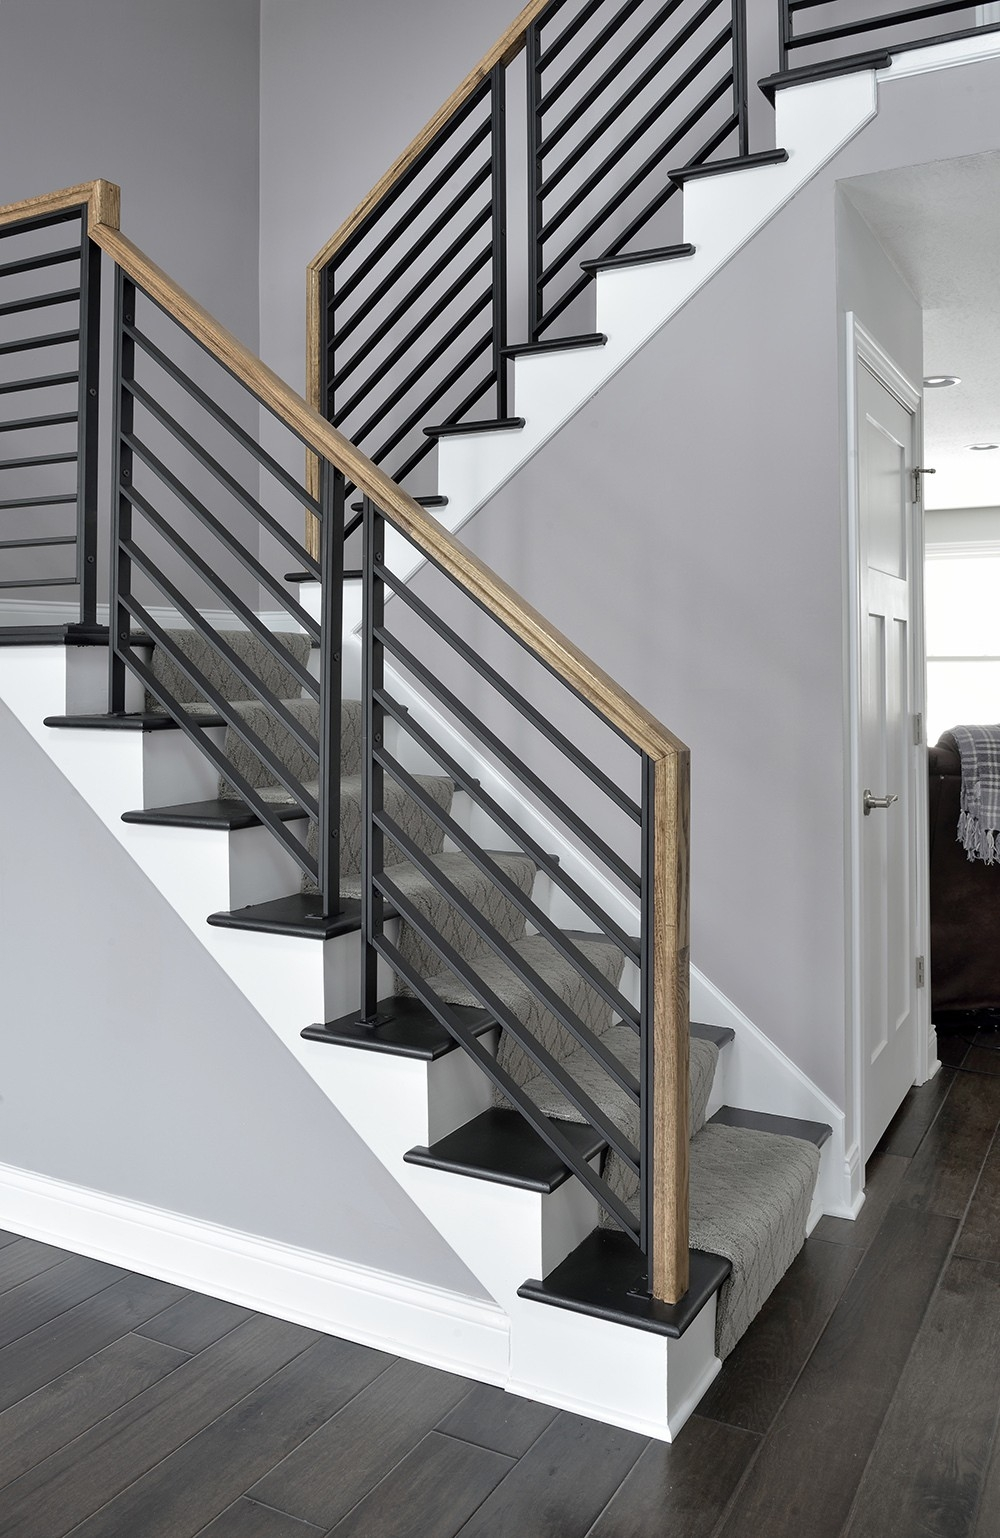 5 Stunning Stairway Trends For Your Home The Money Pit   Stair Banisters And Railings   Baby Proof   Rustic   Split Level   Pinterest   Landing